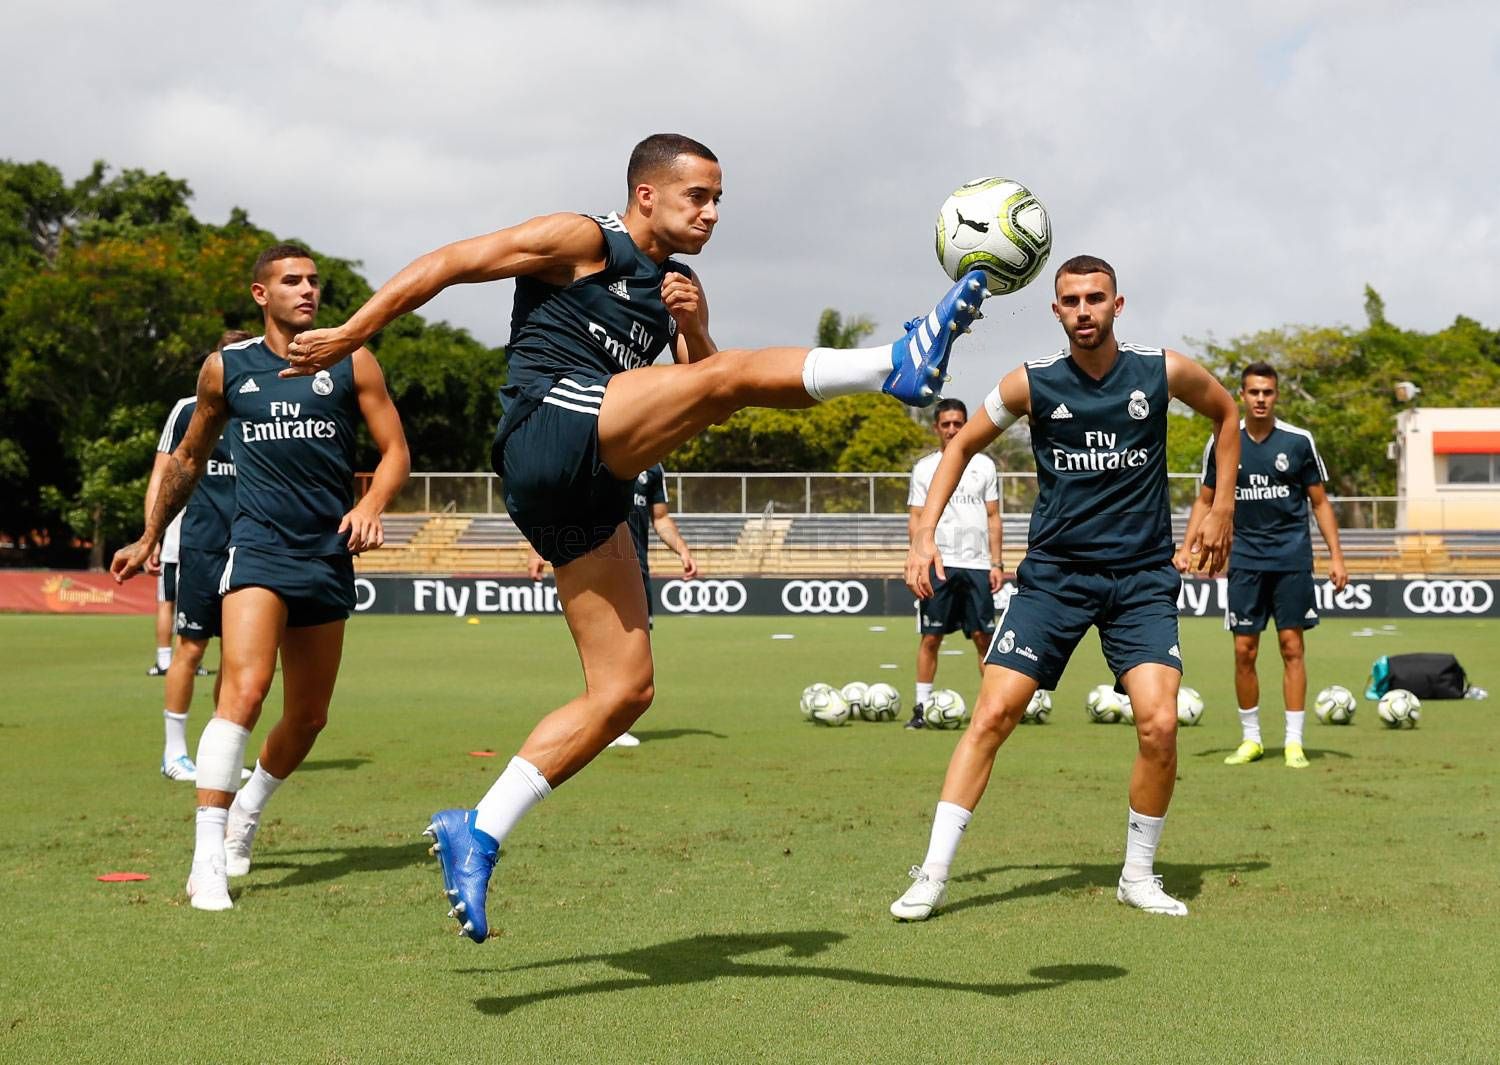 Real Madrid - Entrenamiento del Real Madrid en la Universidad de Barry - 01-08-2018